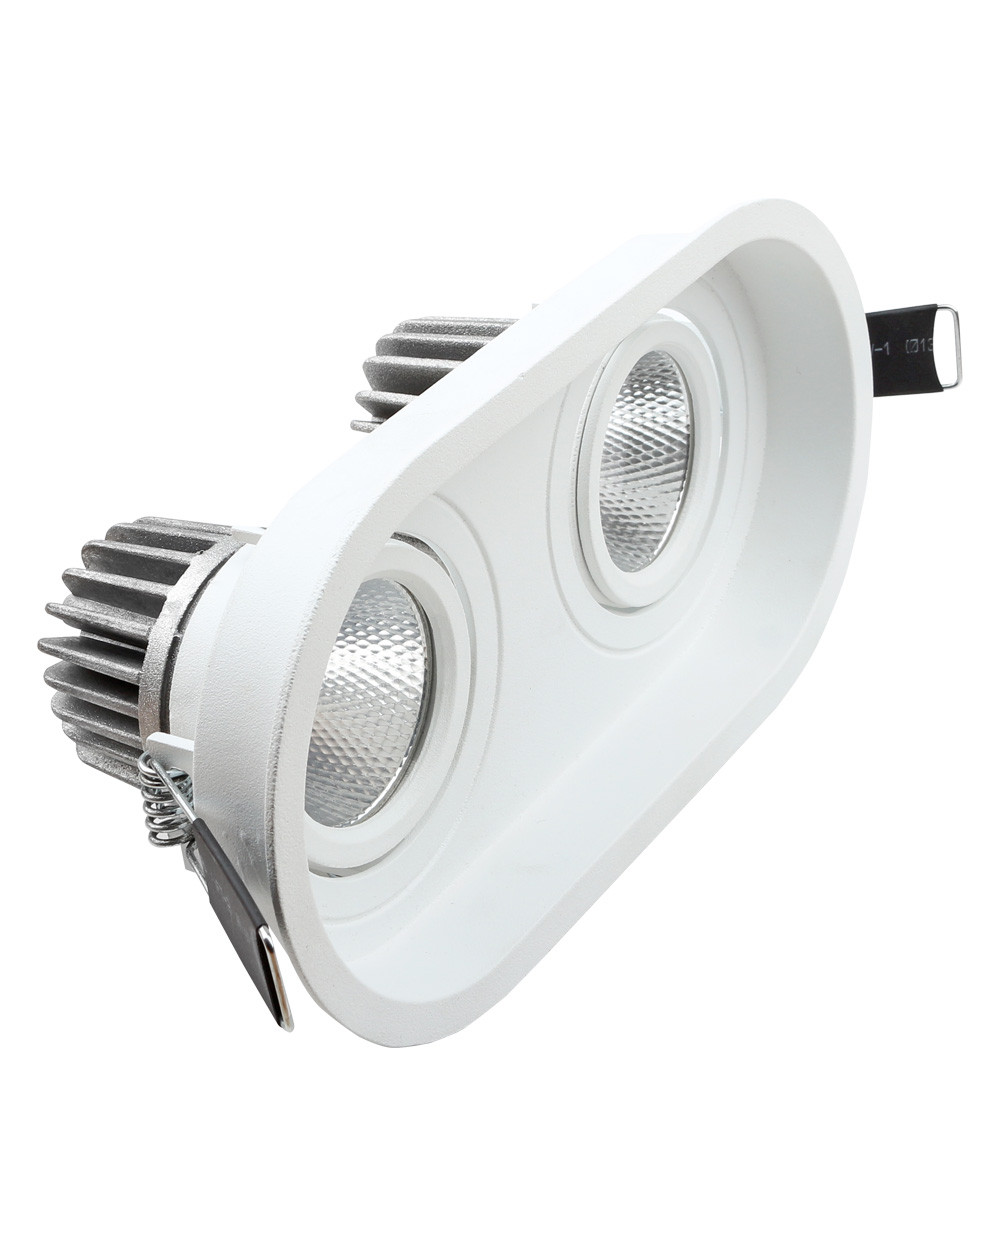 CALYPSO 2 X 9W Oynar Başlı led Downlight - ALC.210-A